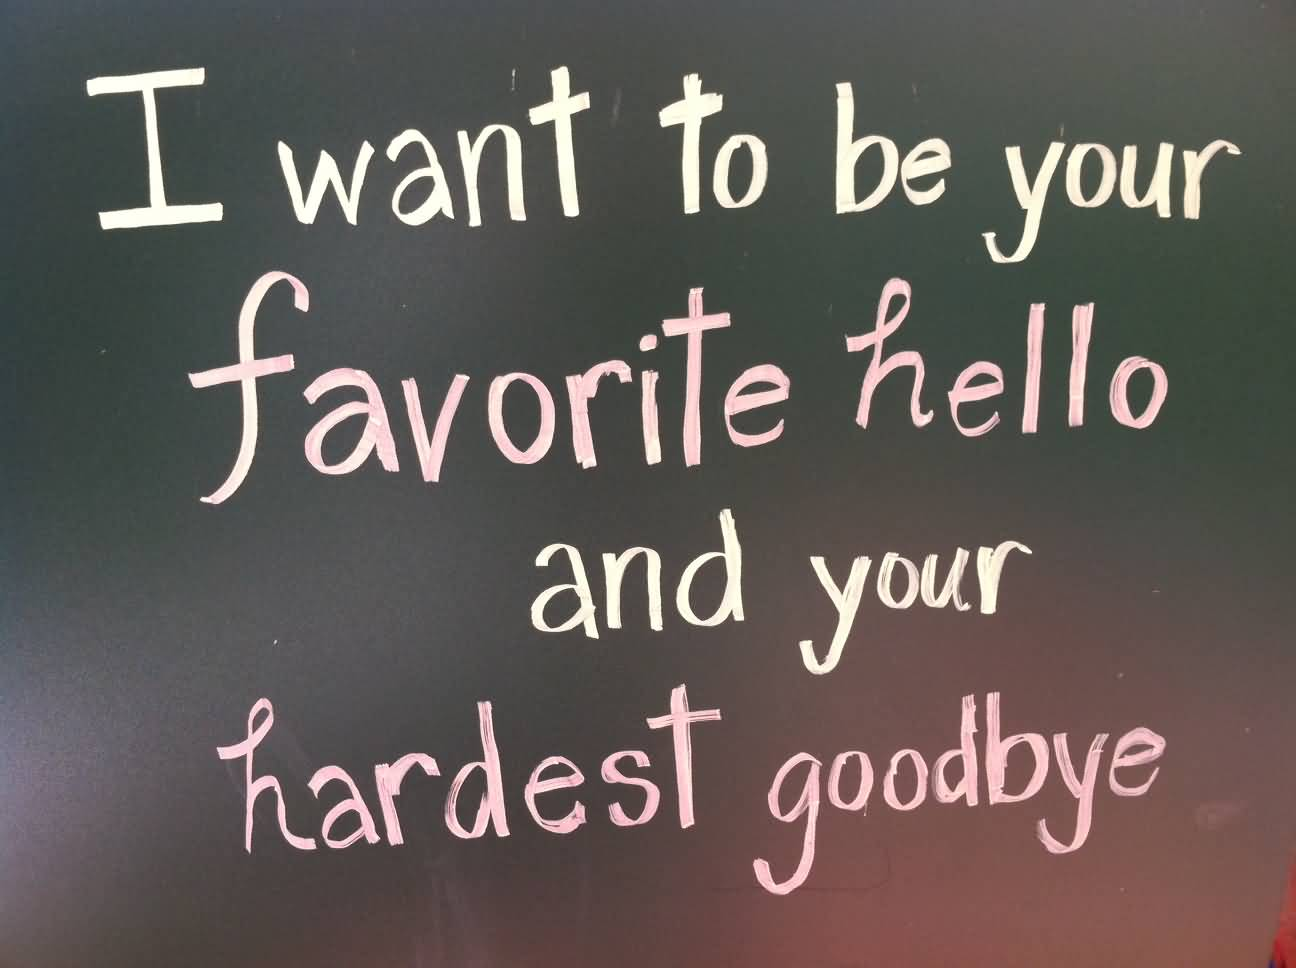 Cute Life Quotes I want to be your favorite hello andyour hardest goodbye